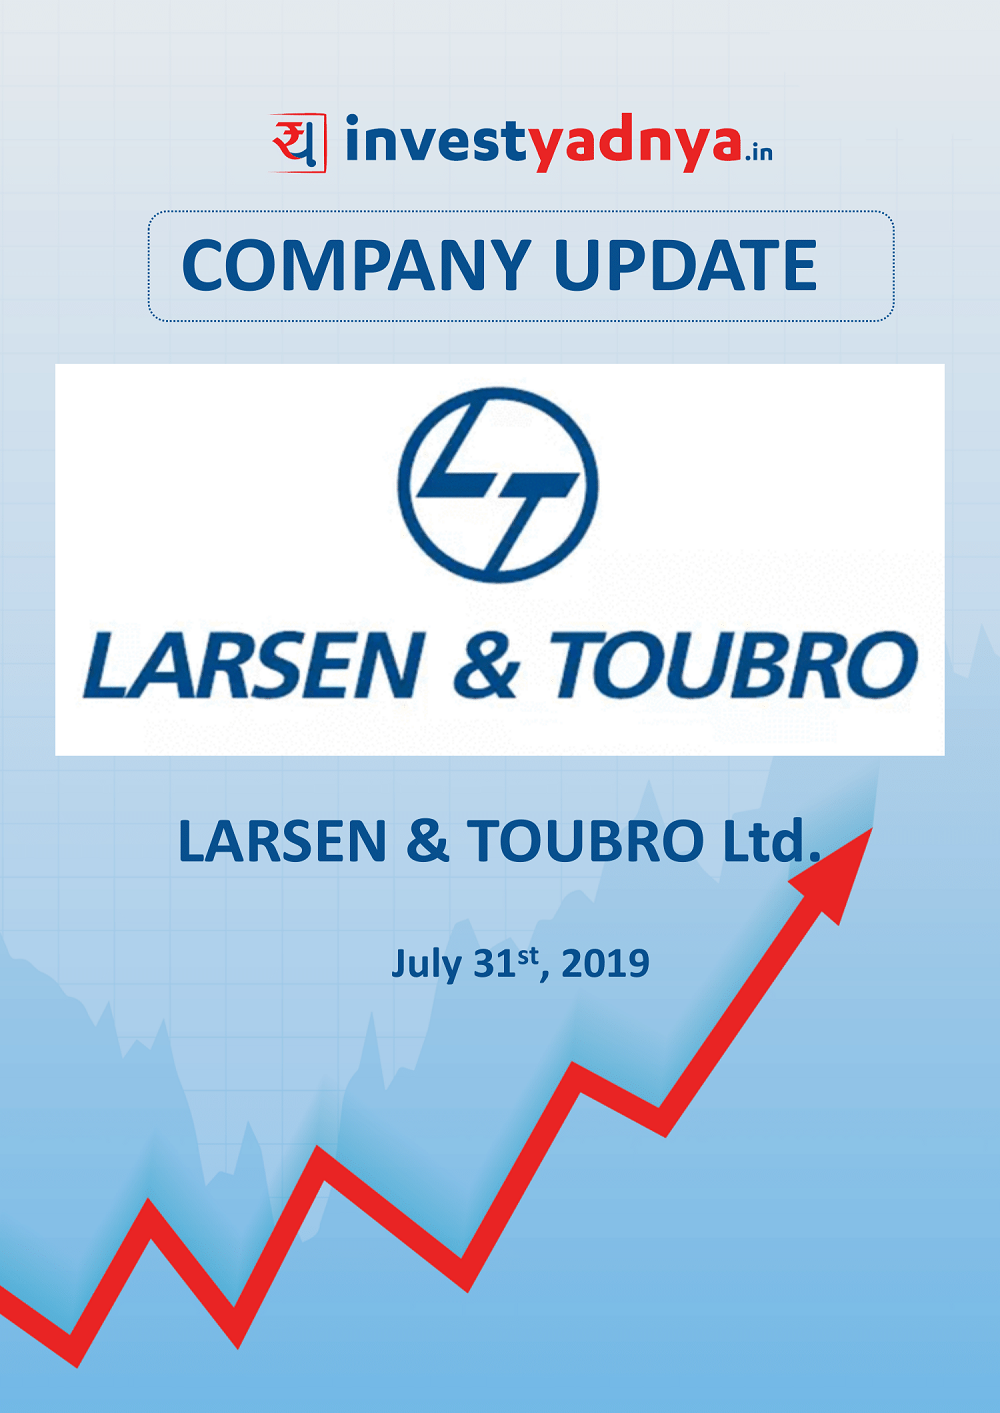 This e-book offers a detailed report on Larsen and Toubro Ltd. considering both qualitative and financial perspectives. It reviews the company's Q1 results. ✔ Detailed Research ✔ Quality Reports